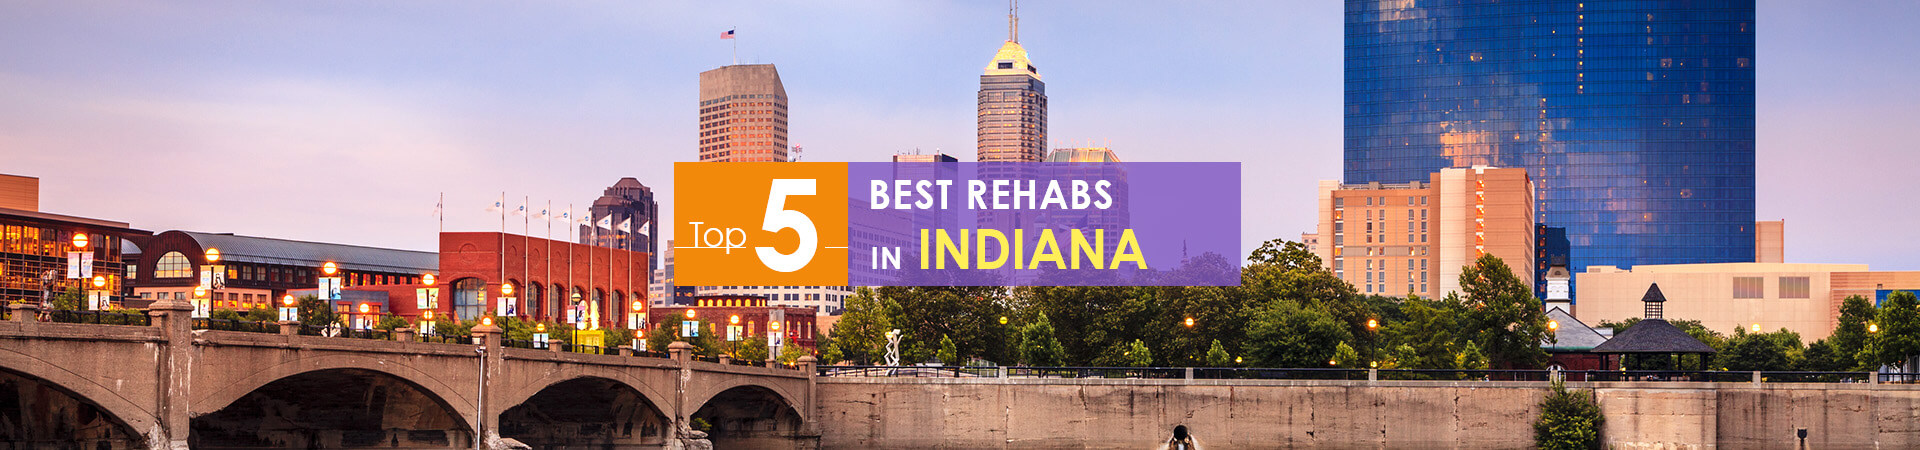 Indianapolis view and top 5 rehabs in Indiana caption